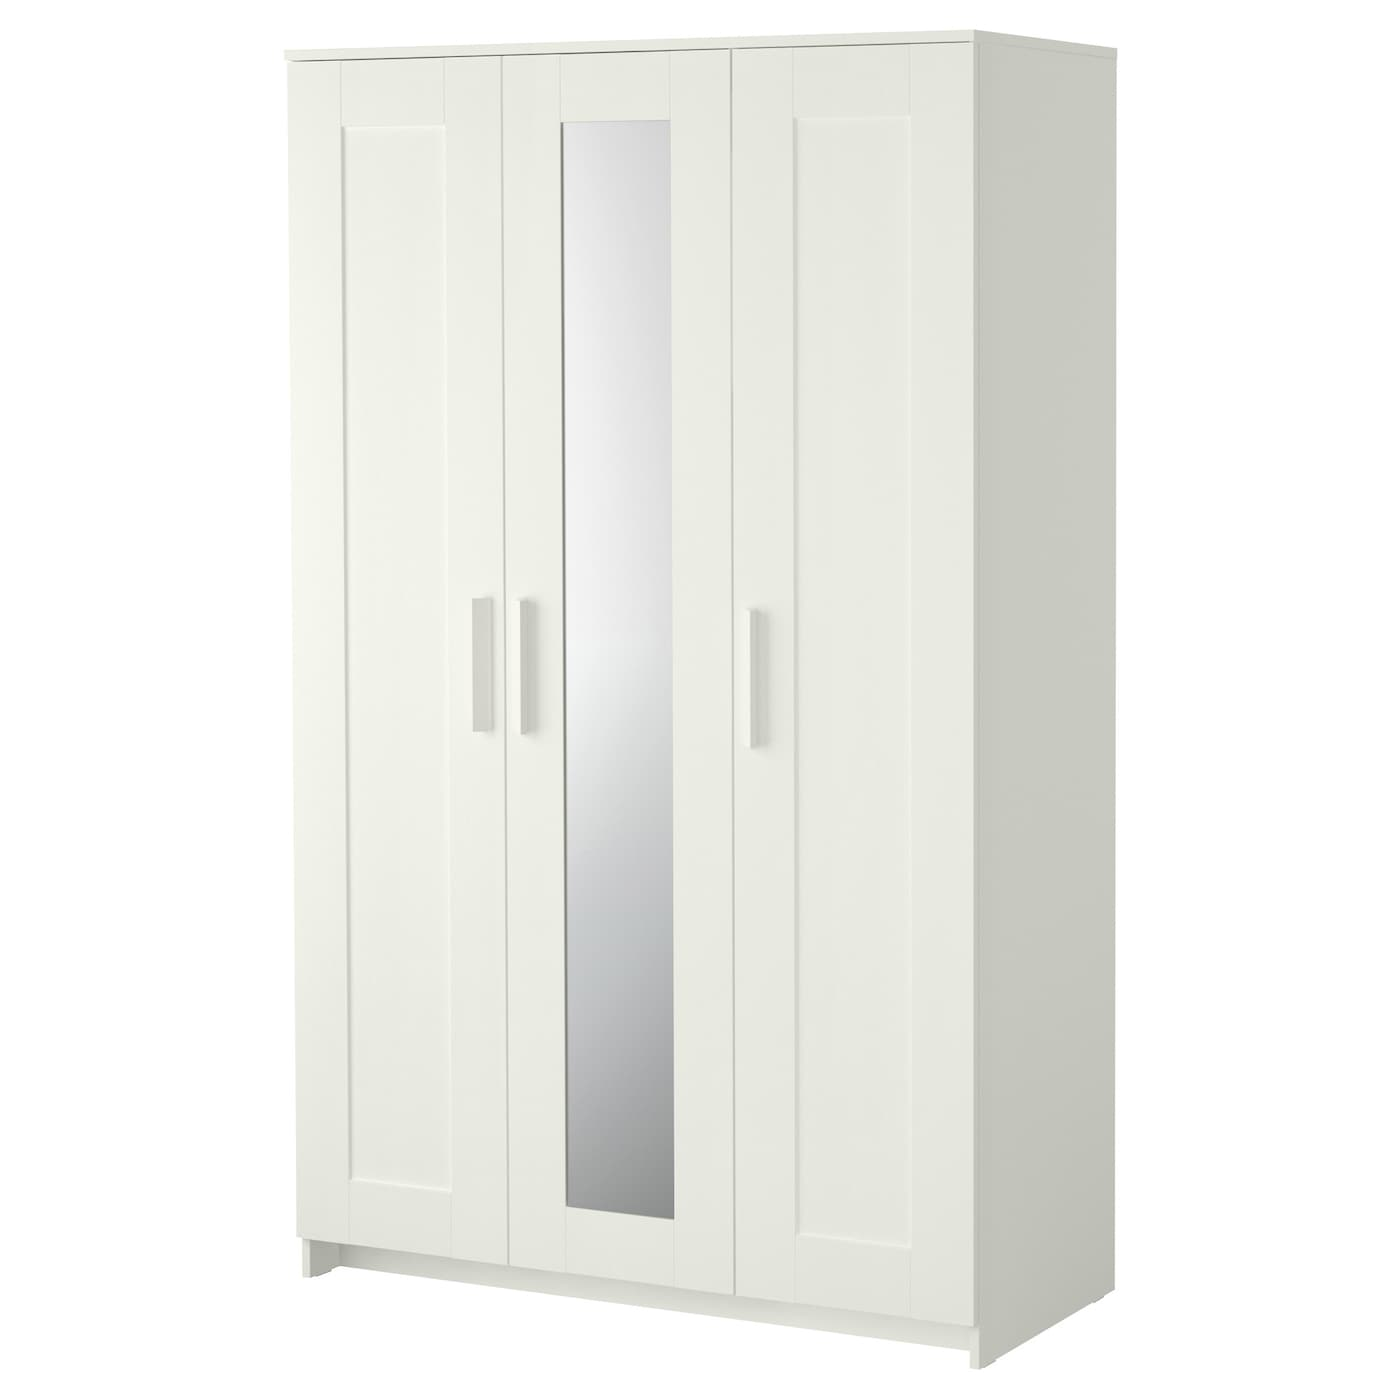 brimnes armoire 3 portes blanc 117 x 190 cm ikea. Black Bedroom Furniture Sets. Home Design Ideas